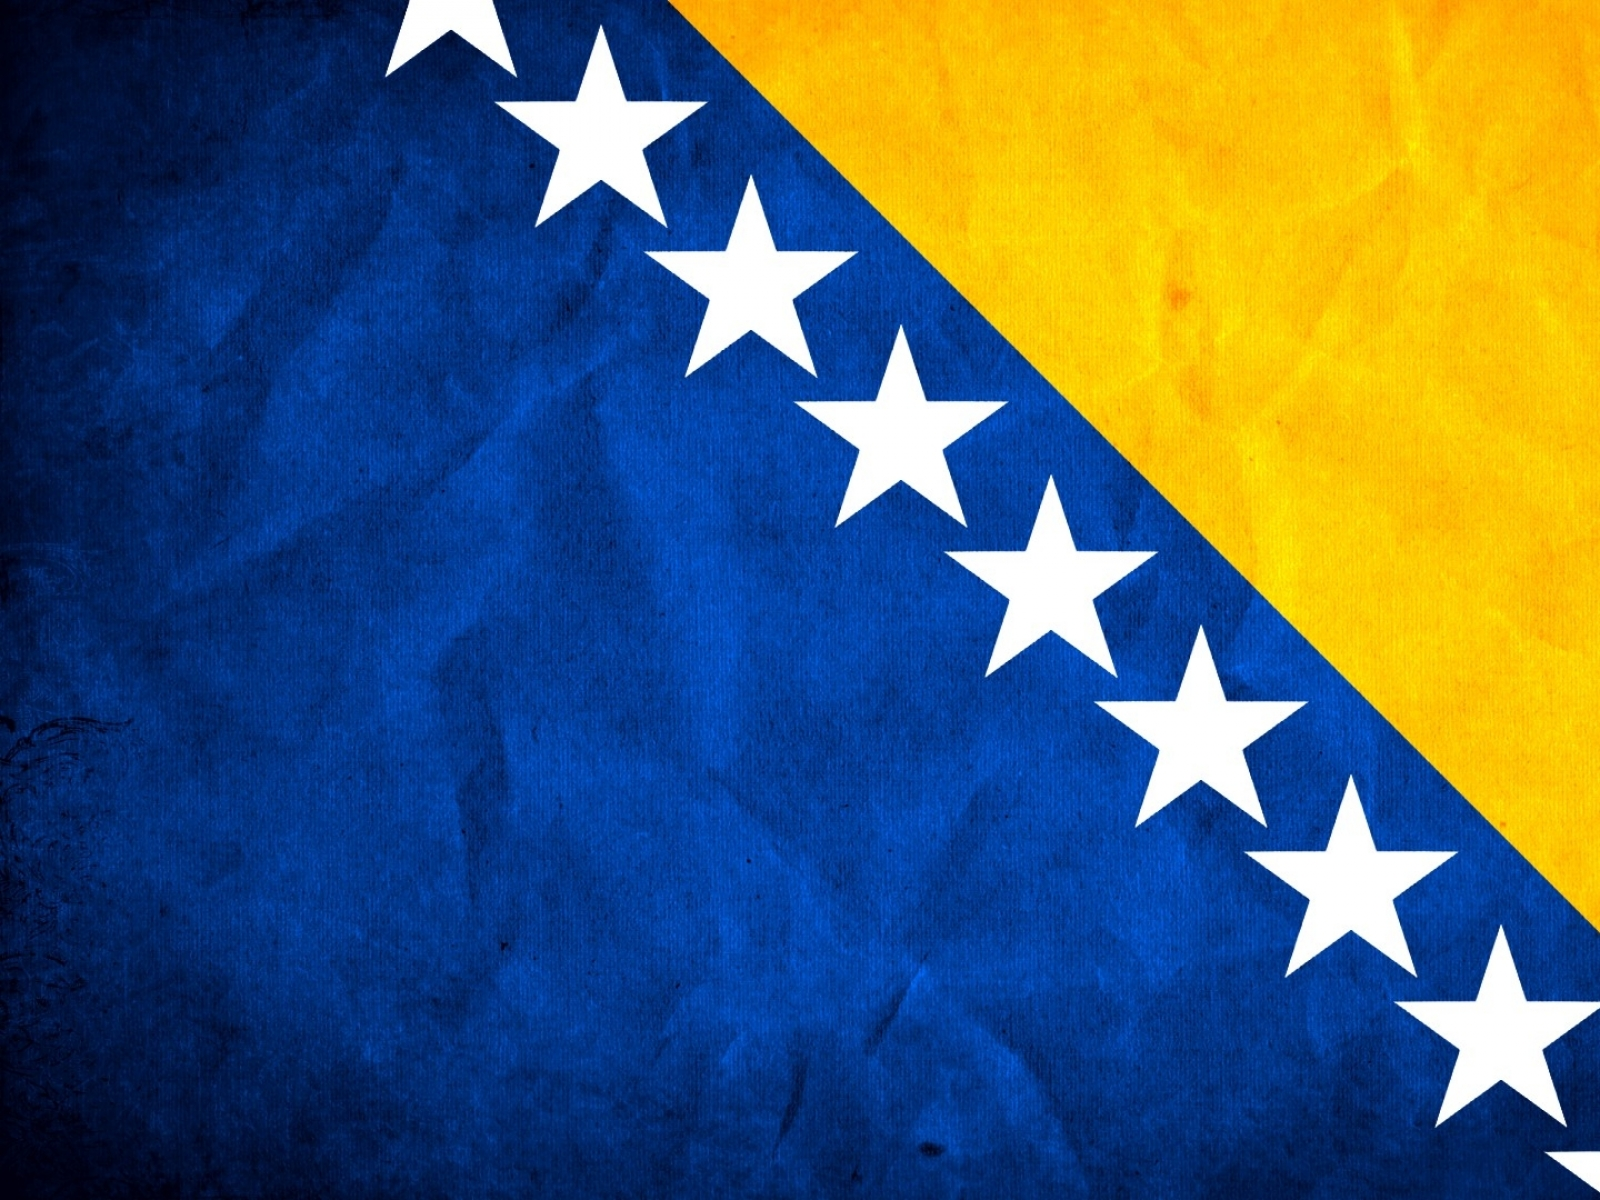 Bosnian Flag Wallpaper - Best Picture Of Flag Imagesco.Org